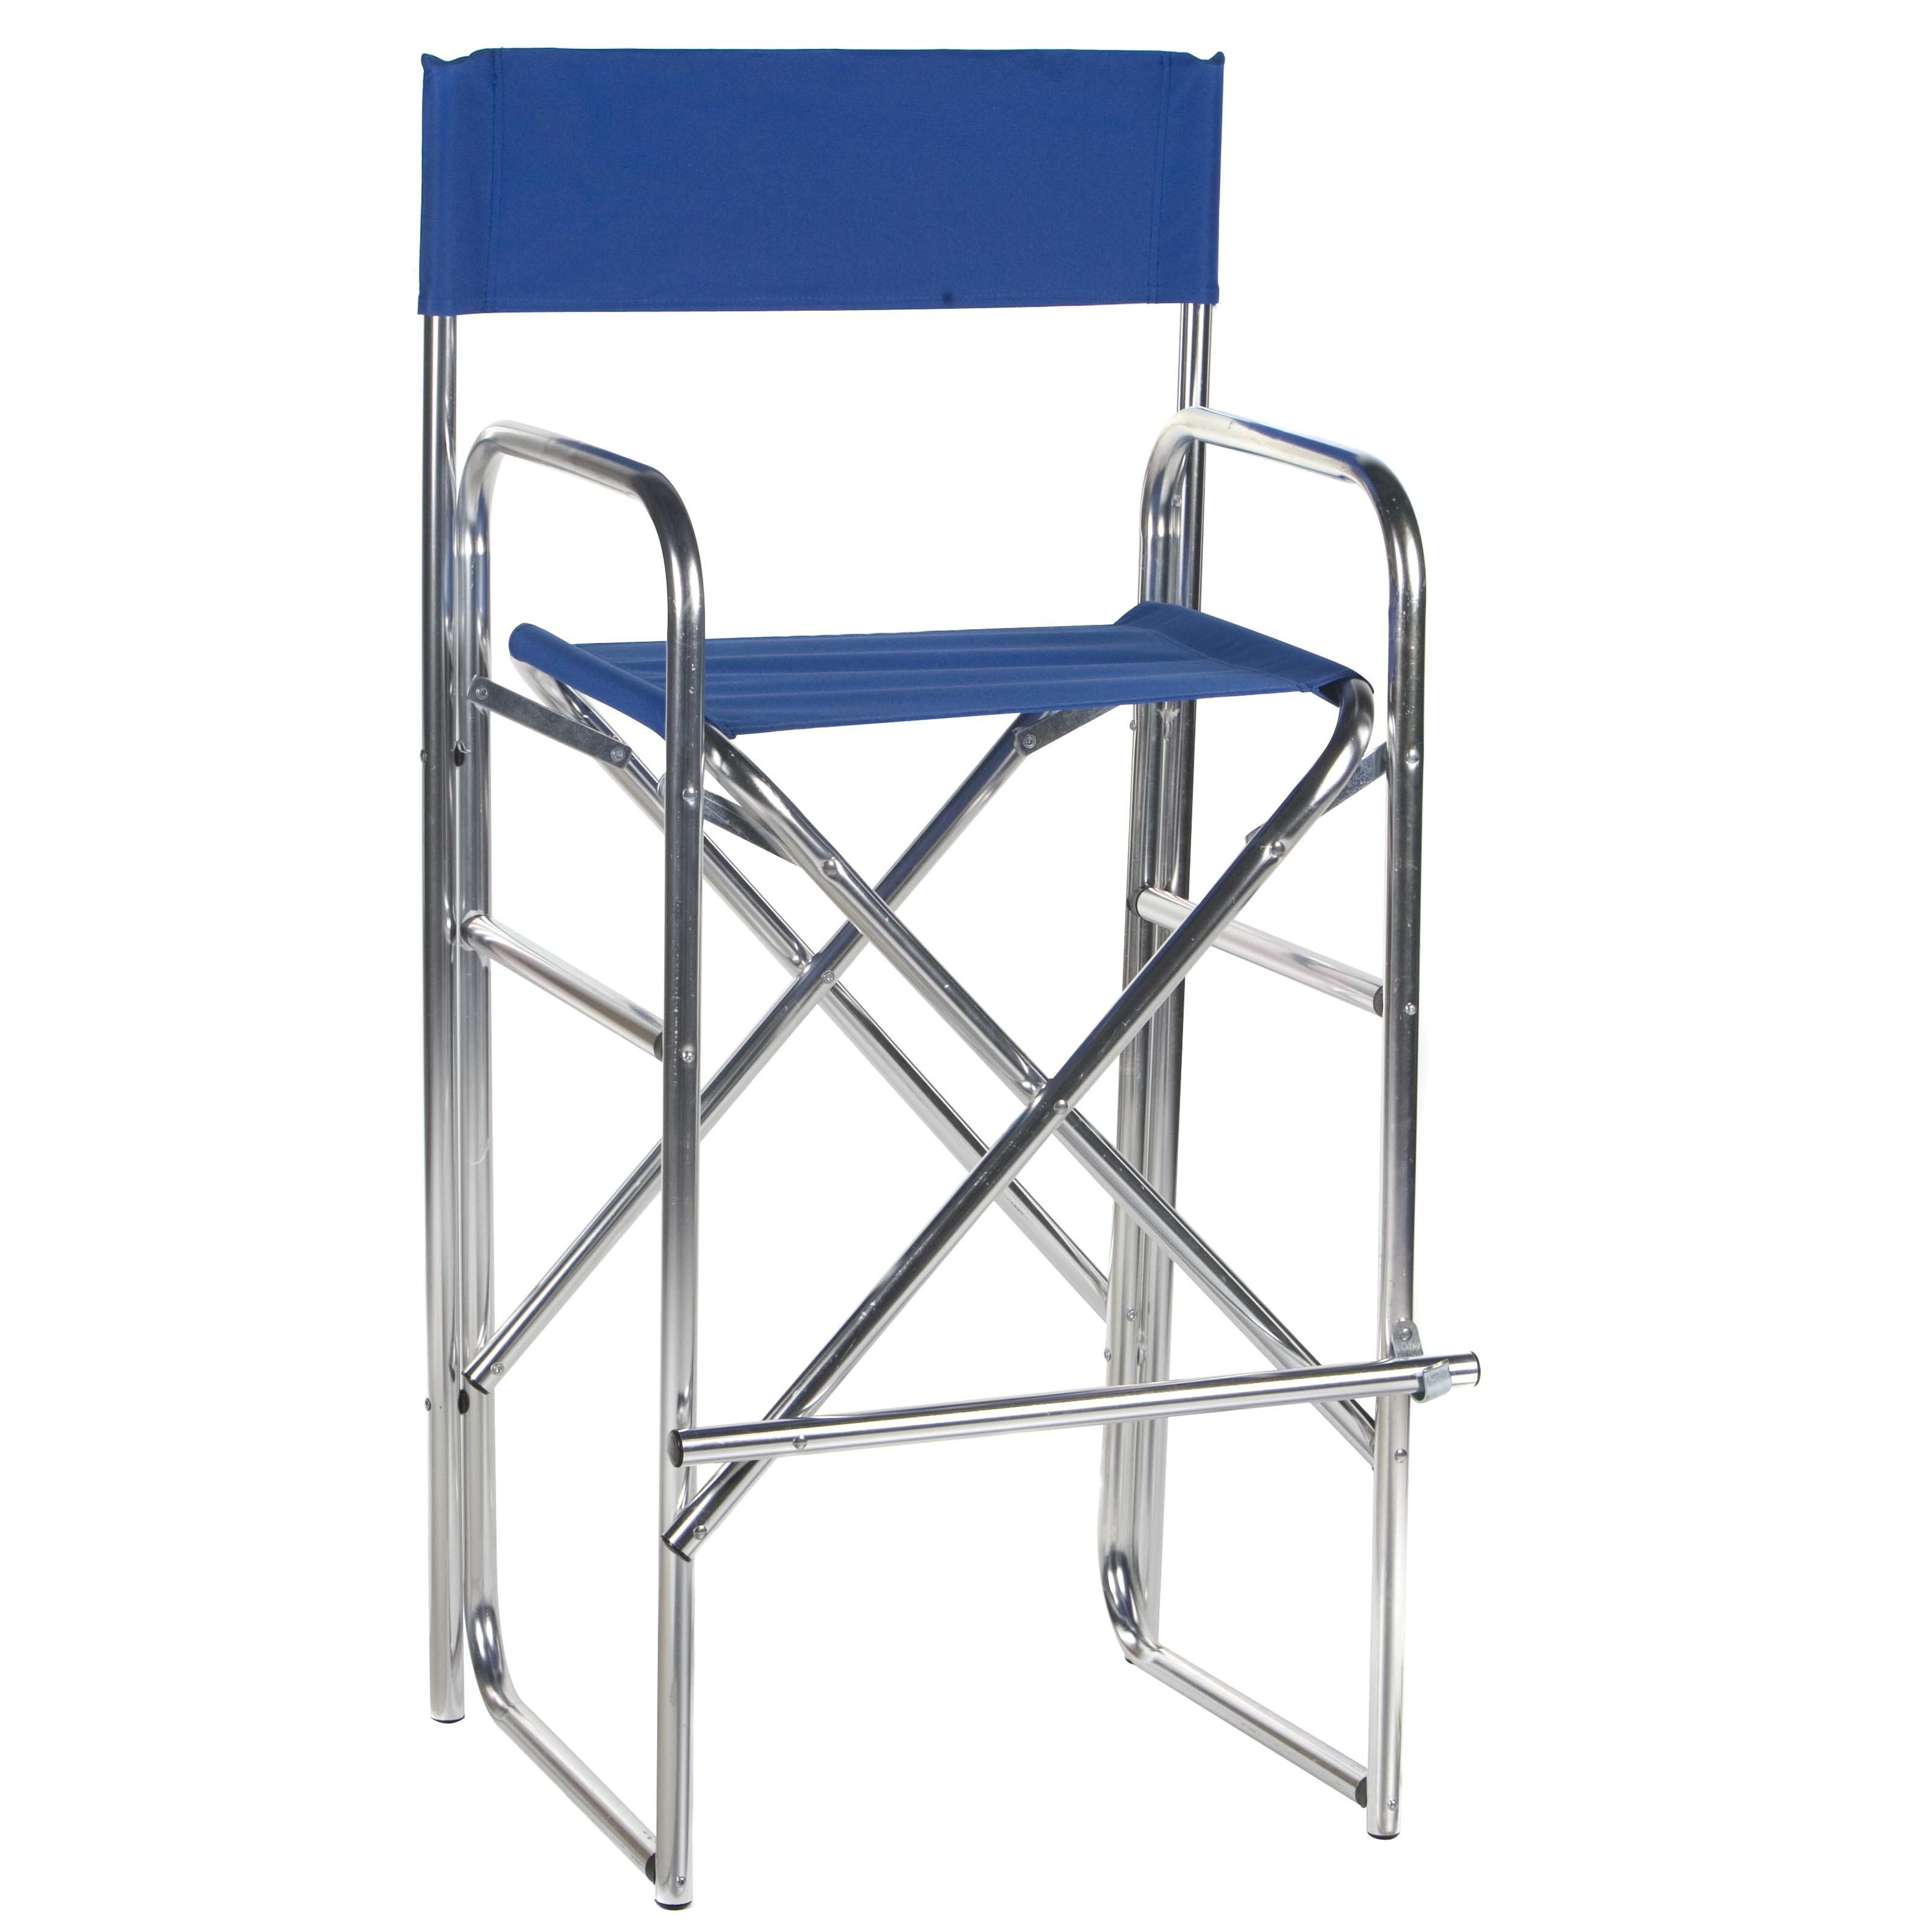 Strange Have To Have It 30 5 Inch Aluminum Frame Bar Height Uwap Interior Chair Design Uwaporg